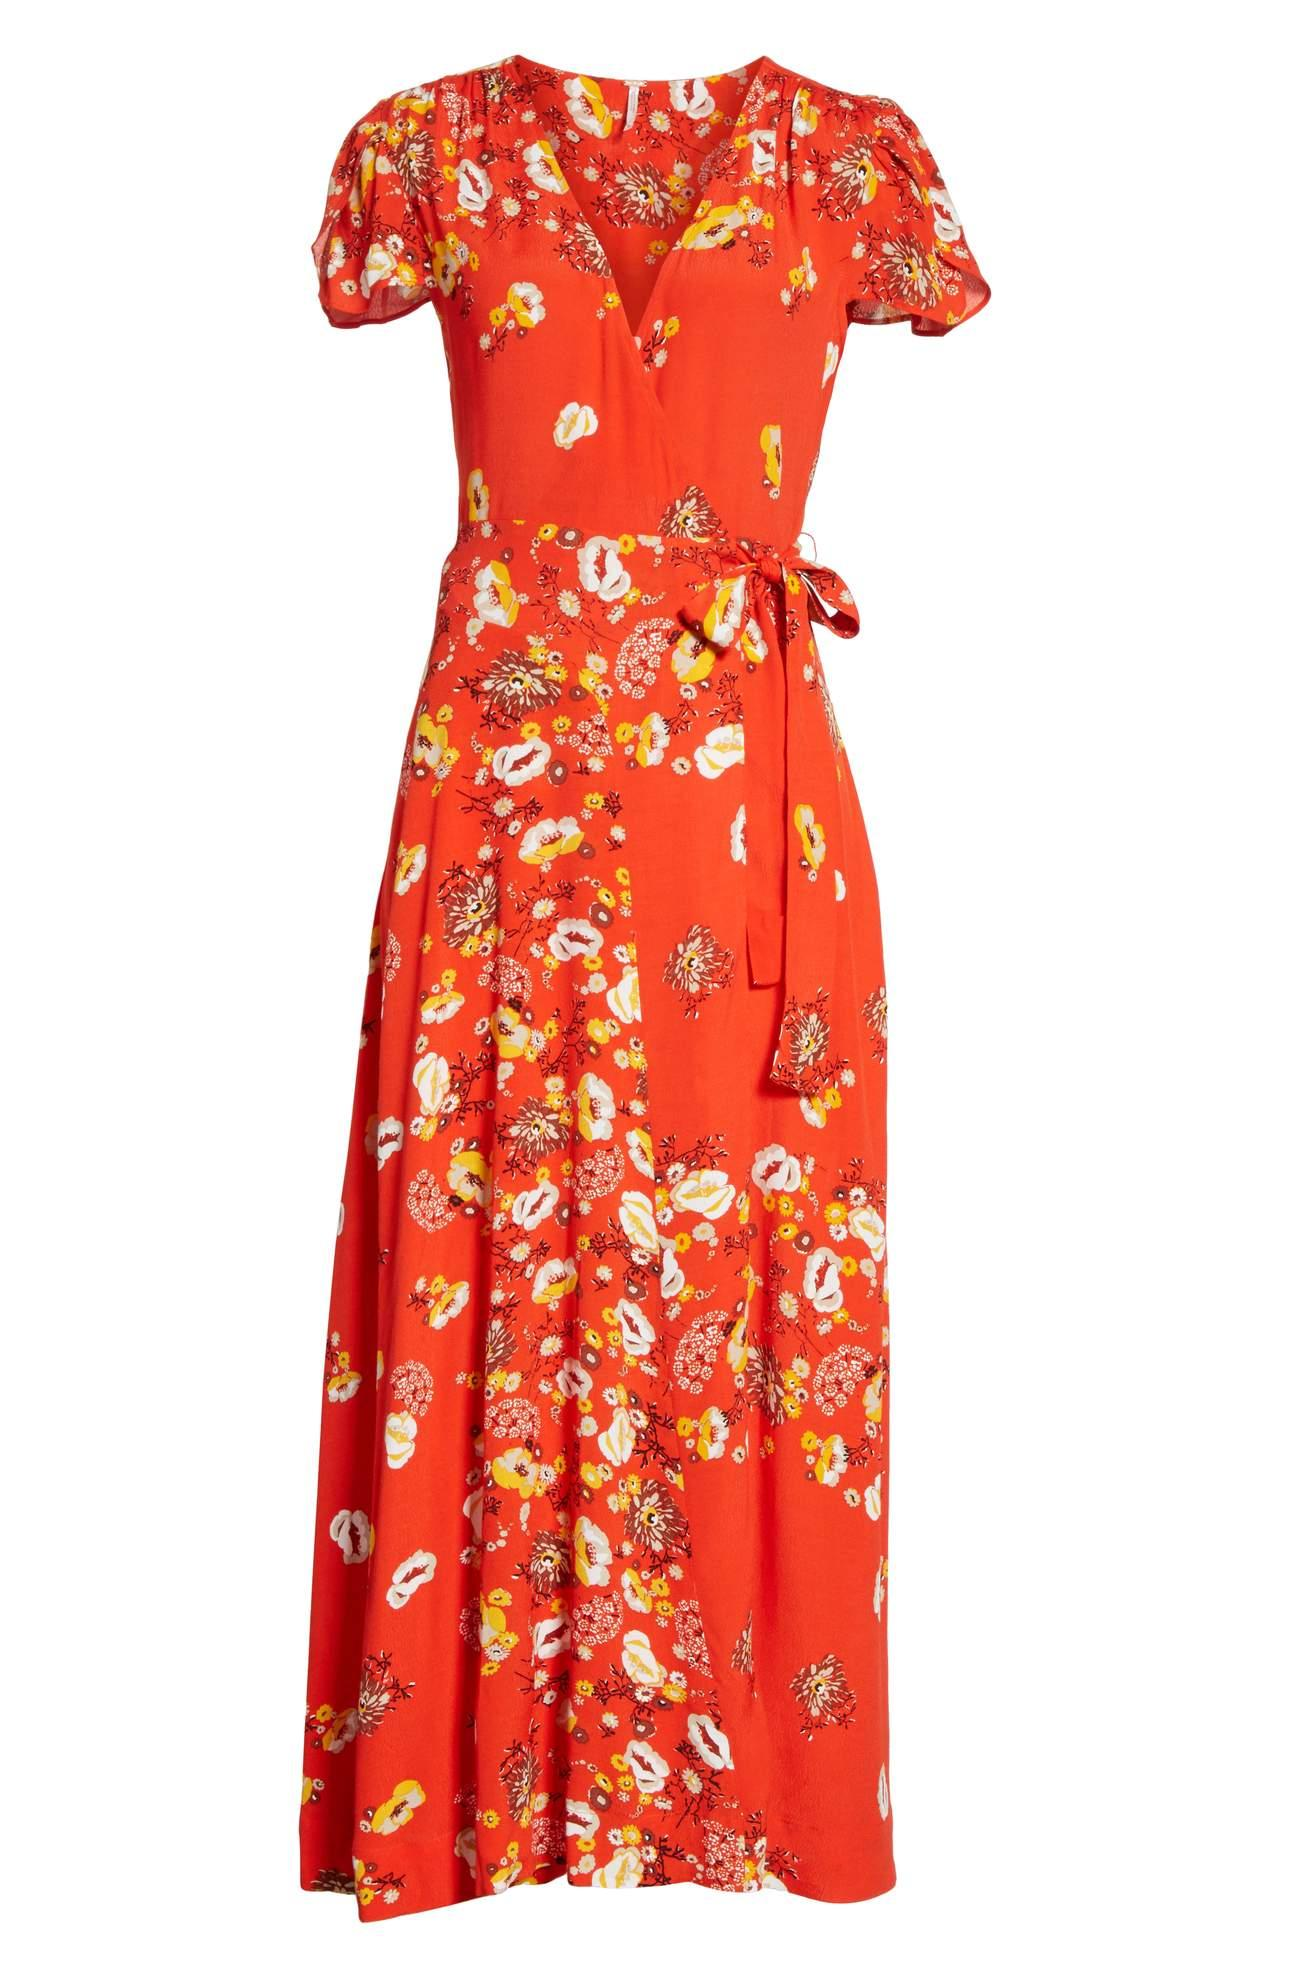 <p>Check out this gorgeous Jess Wrap Maxi Dress/FREE PEOPLE. Wrapped at the waist and tied with a sweet little bow, this ankle-grazing dress will add floral charm to your warm-weather wardrobe. $148.00 at Nordstrom. (Image: Nordstrom){&amp;nbsp;}</p><p></p>